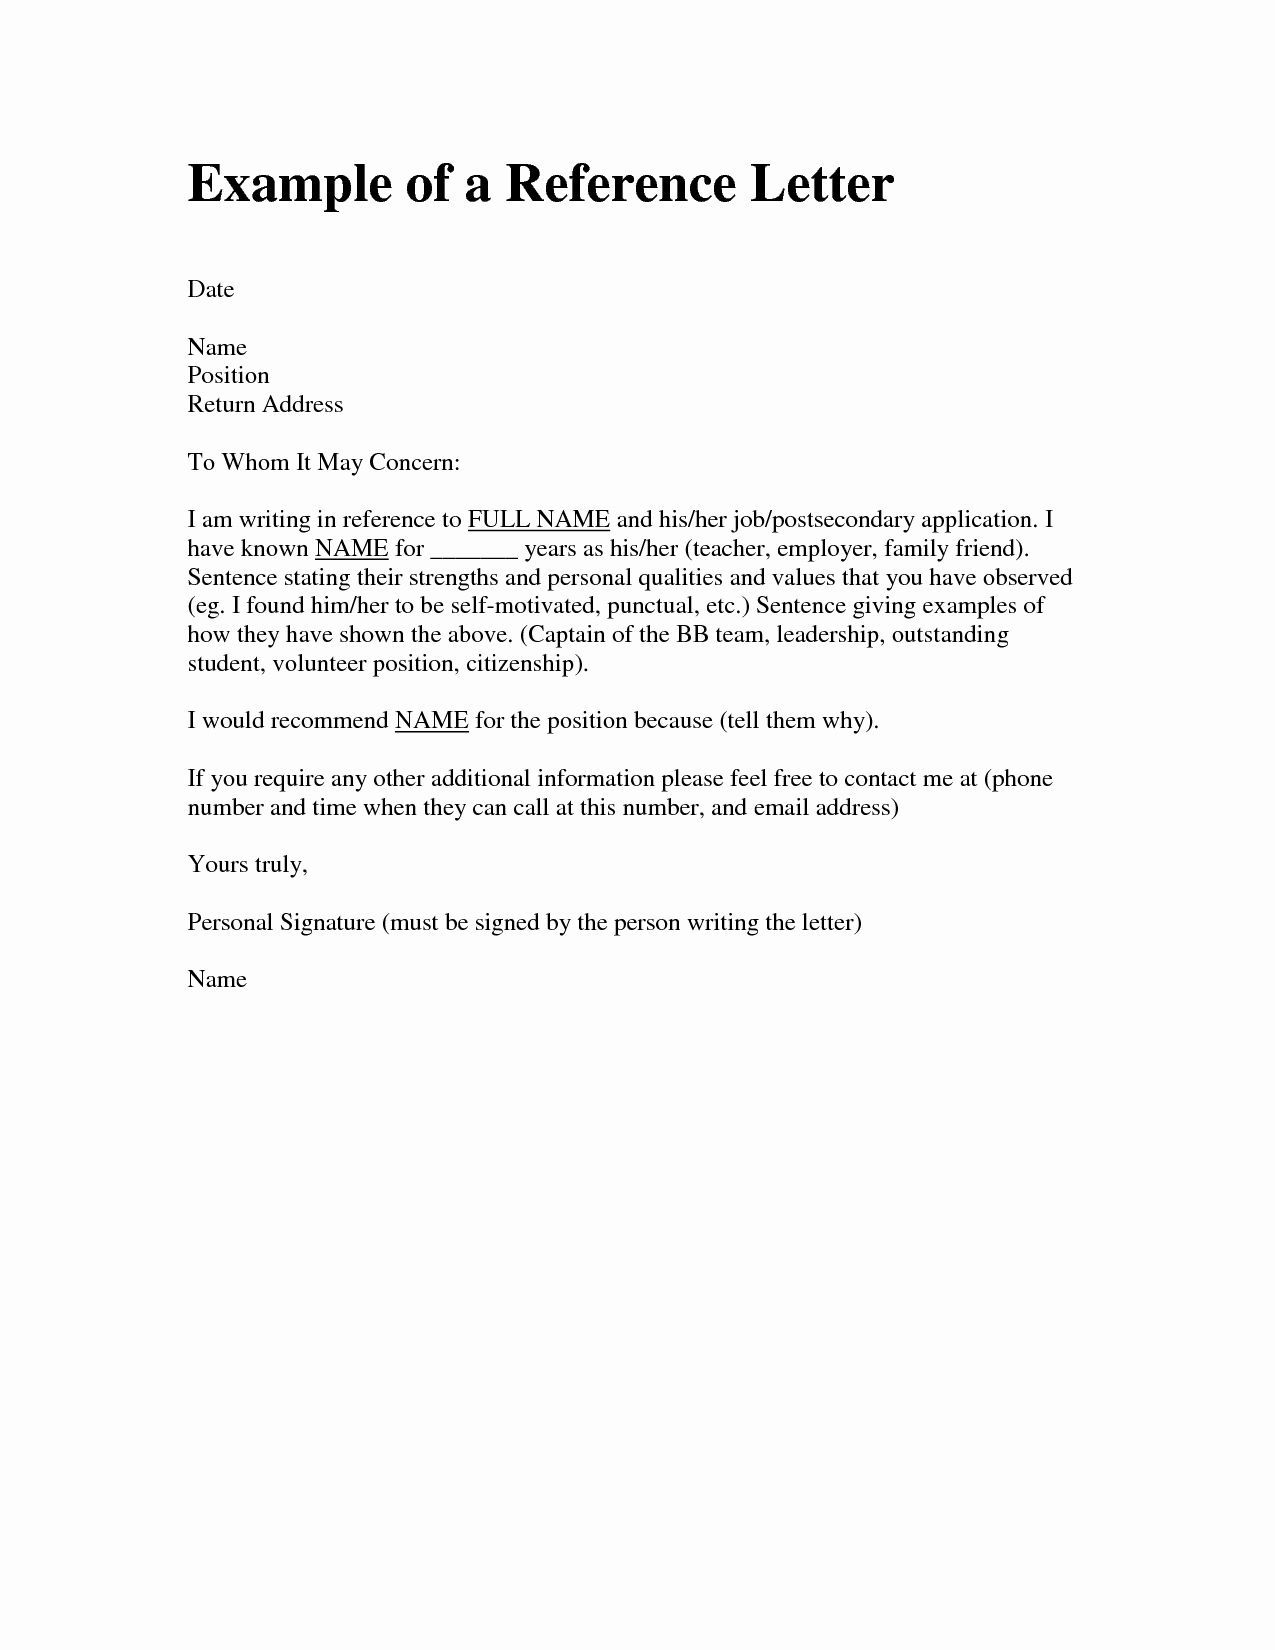 003 Astounding Letter Of Recomendation Template Image  Reference For Employment Sample Recommendation Teacher Student From EmployerFull